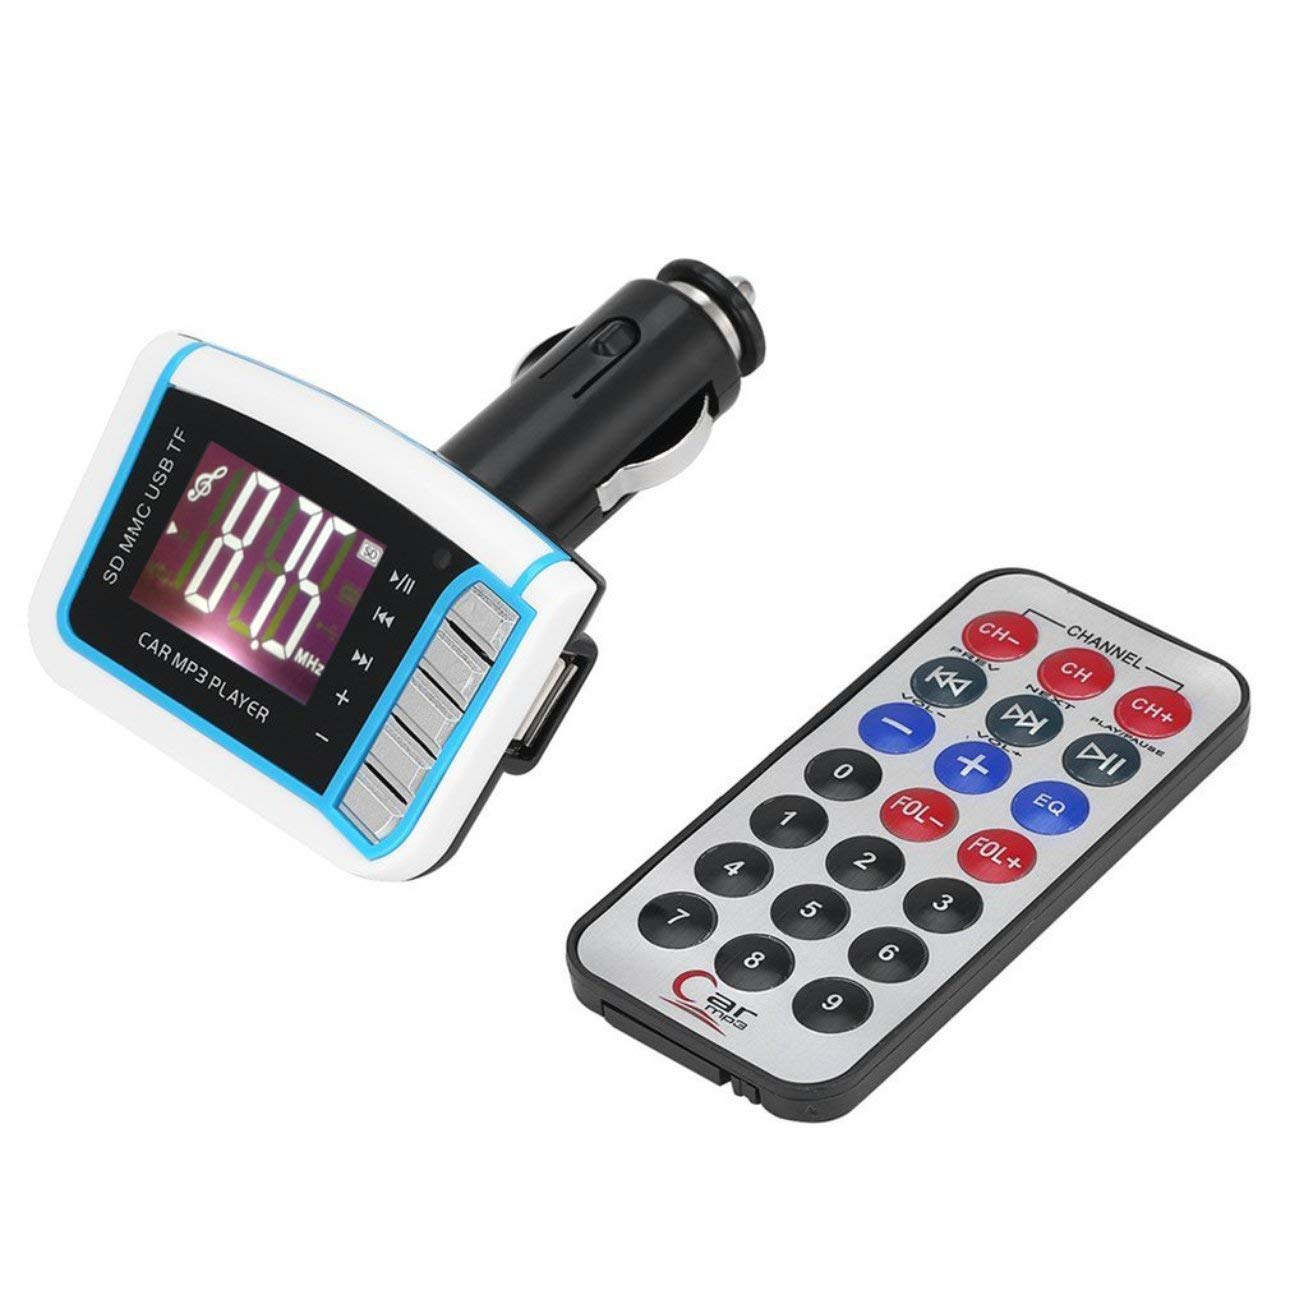 Liobaba Practical Handsfree Car Kit MP3 Player FM Transmitter Modulator USB MMC 1.44 LCD with Remote Control